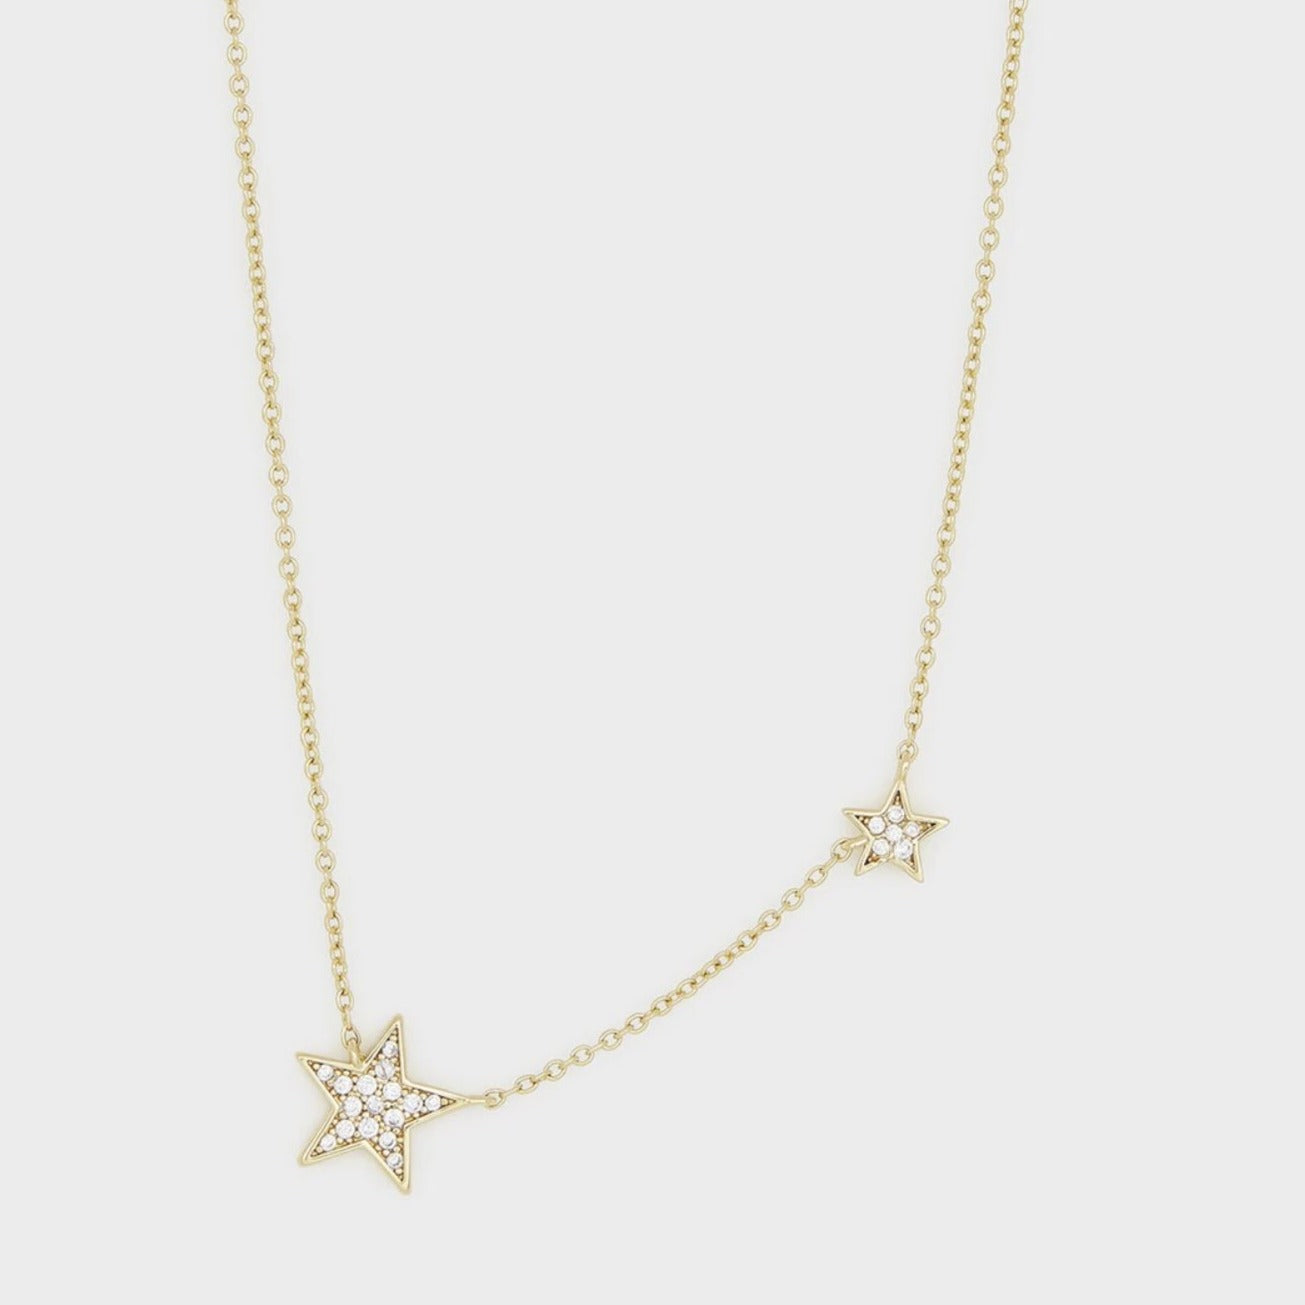 "Inspired by our best-selling Super Star collection. Featuring a duo of pavé encrusted stars, this necklace adds a touch of celestial shine to any outfit. An adjustable slide bead allows this necklace to be worn at multiple lengths.   Adjustable Chain extends out to 17 1/4"" Large star measures 7/16"" across, small star 1/4"" across Spring ring closure with silicone slide bead Cubic zirconia Available in 18k gold plated brass Avoid contact with anything containing derivatives of alcohol"